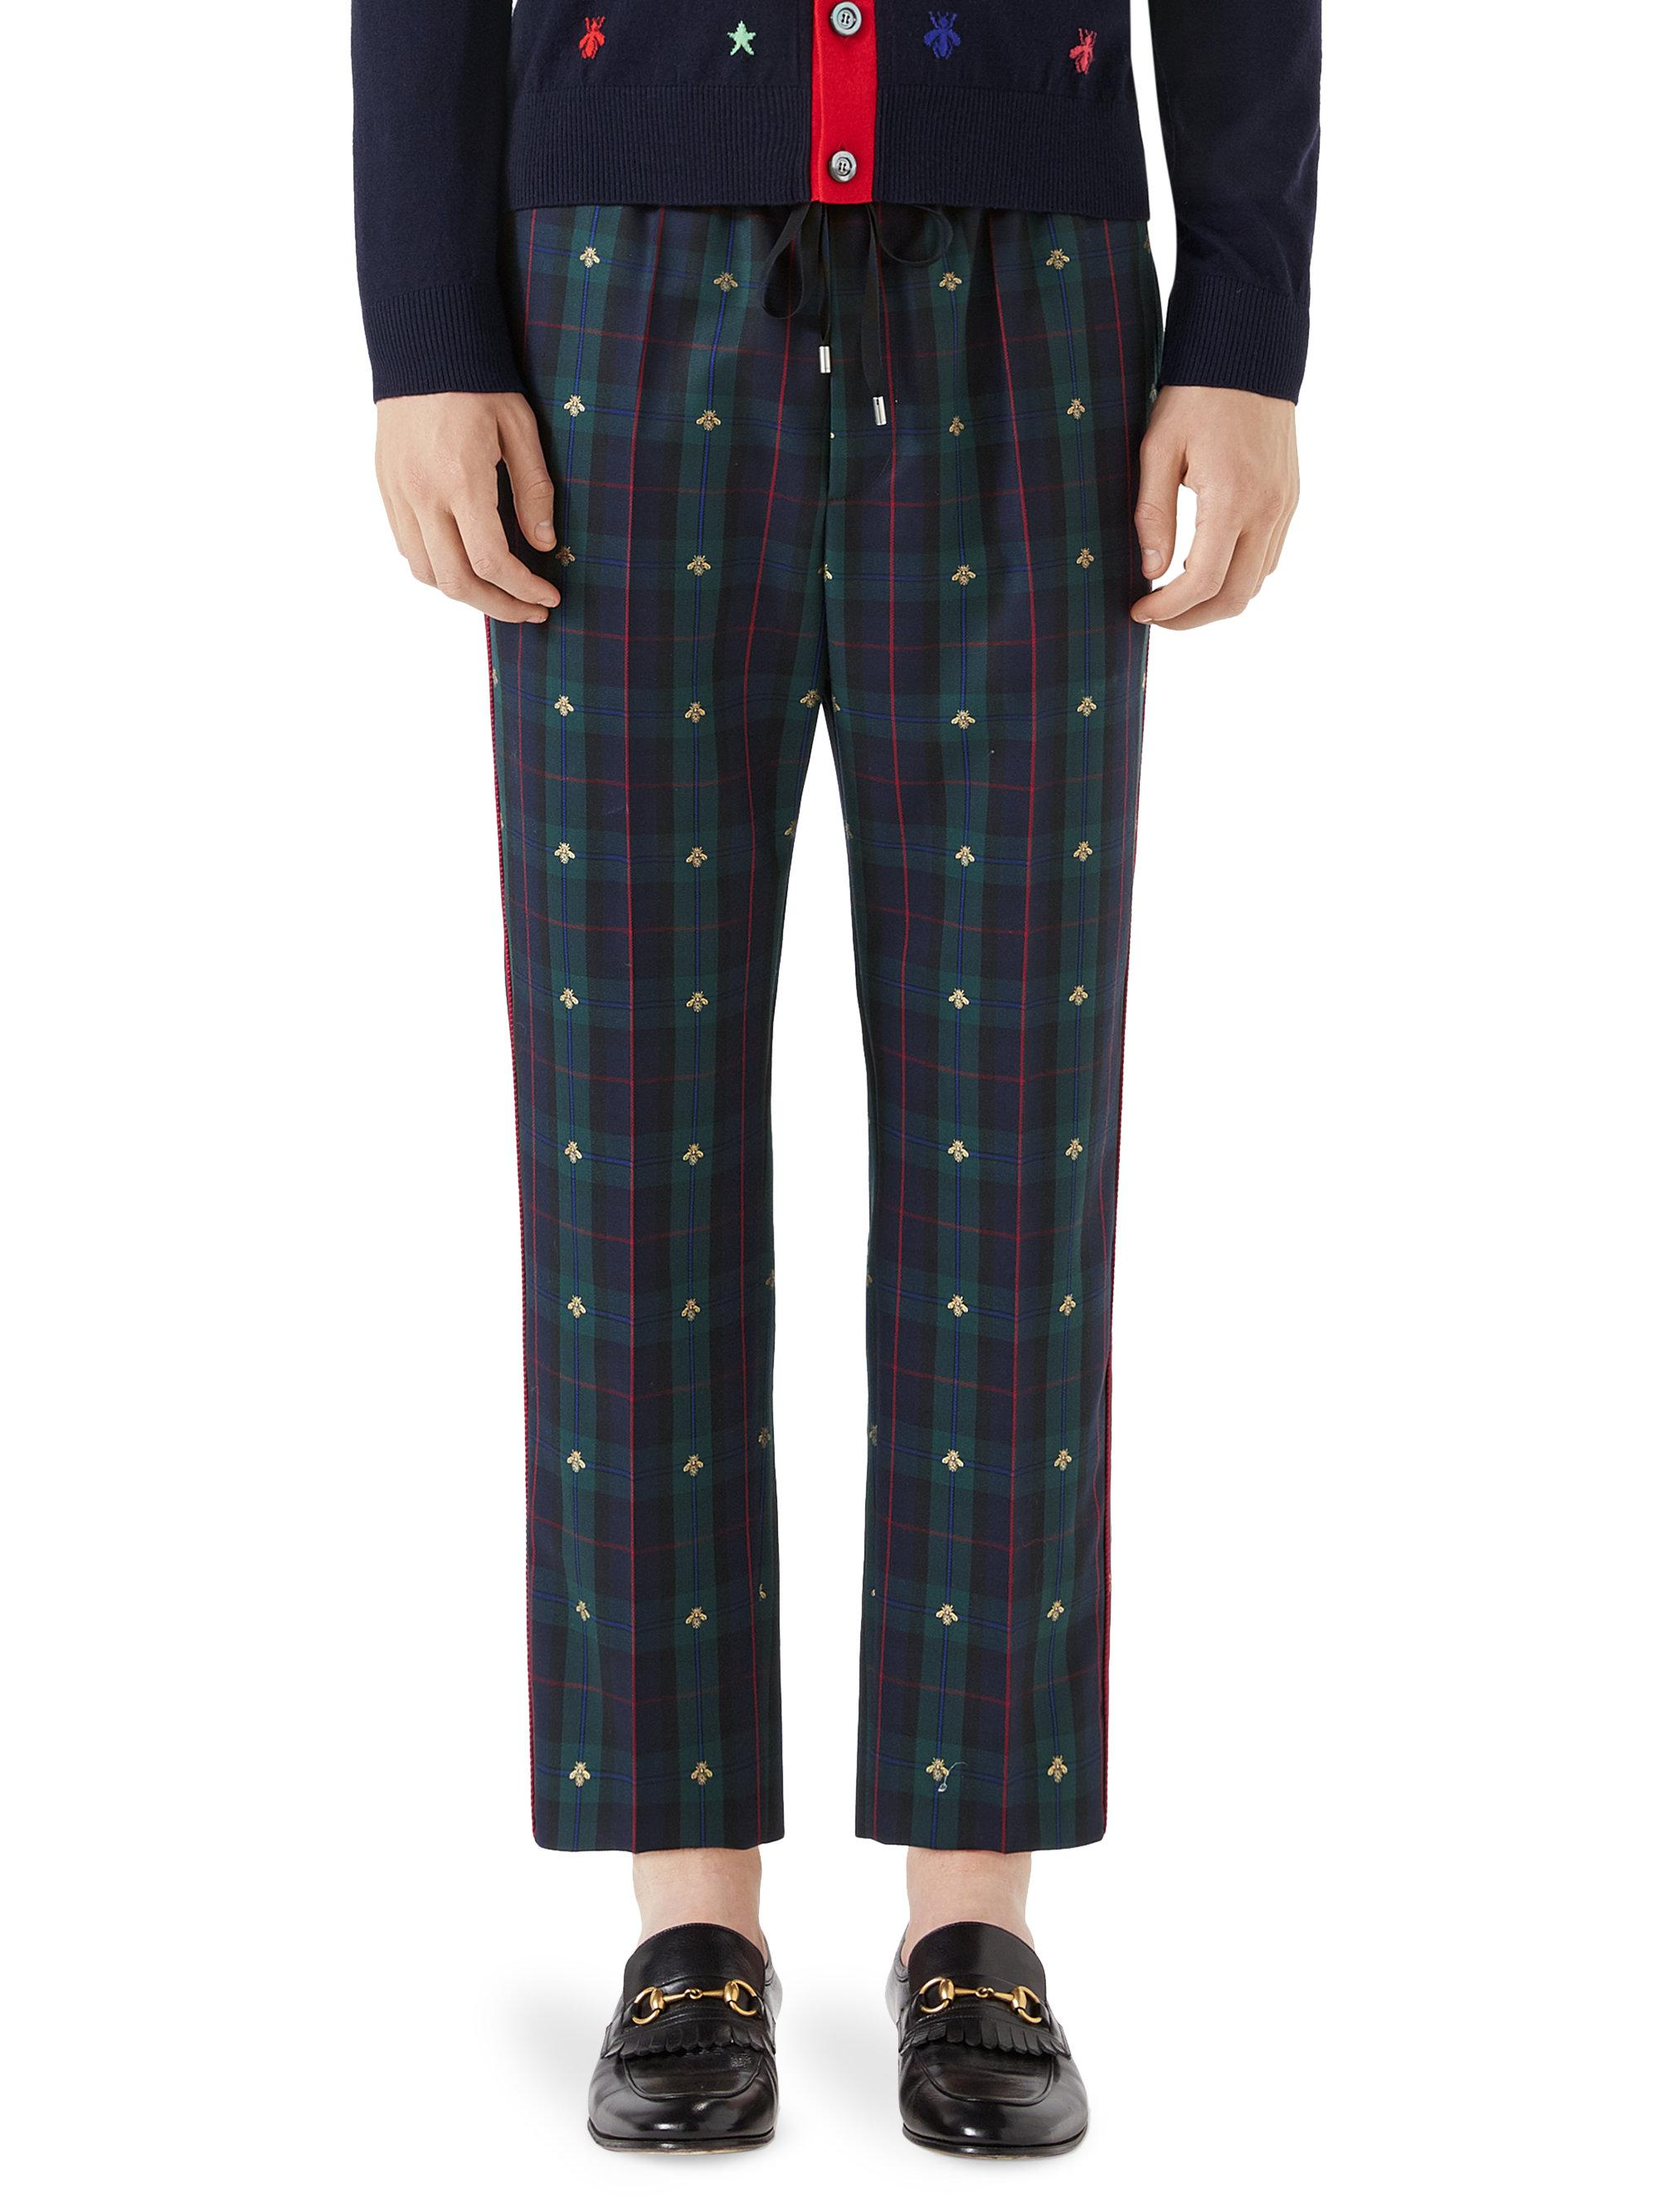 dcb5ced1640 Gucci Bee Iconic Check Wool Ankle Pants in Blue for Men - Lyst